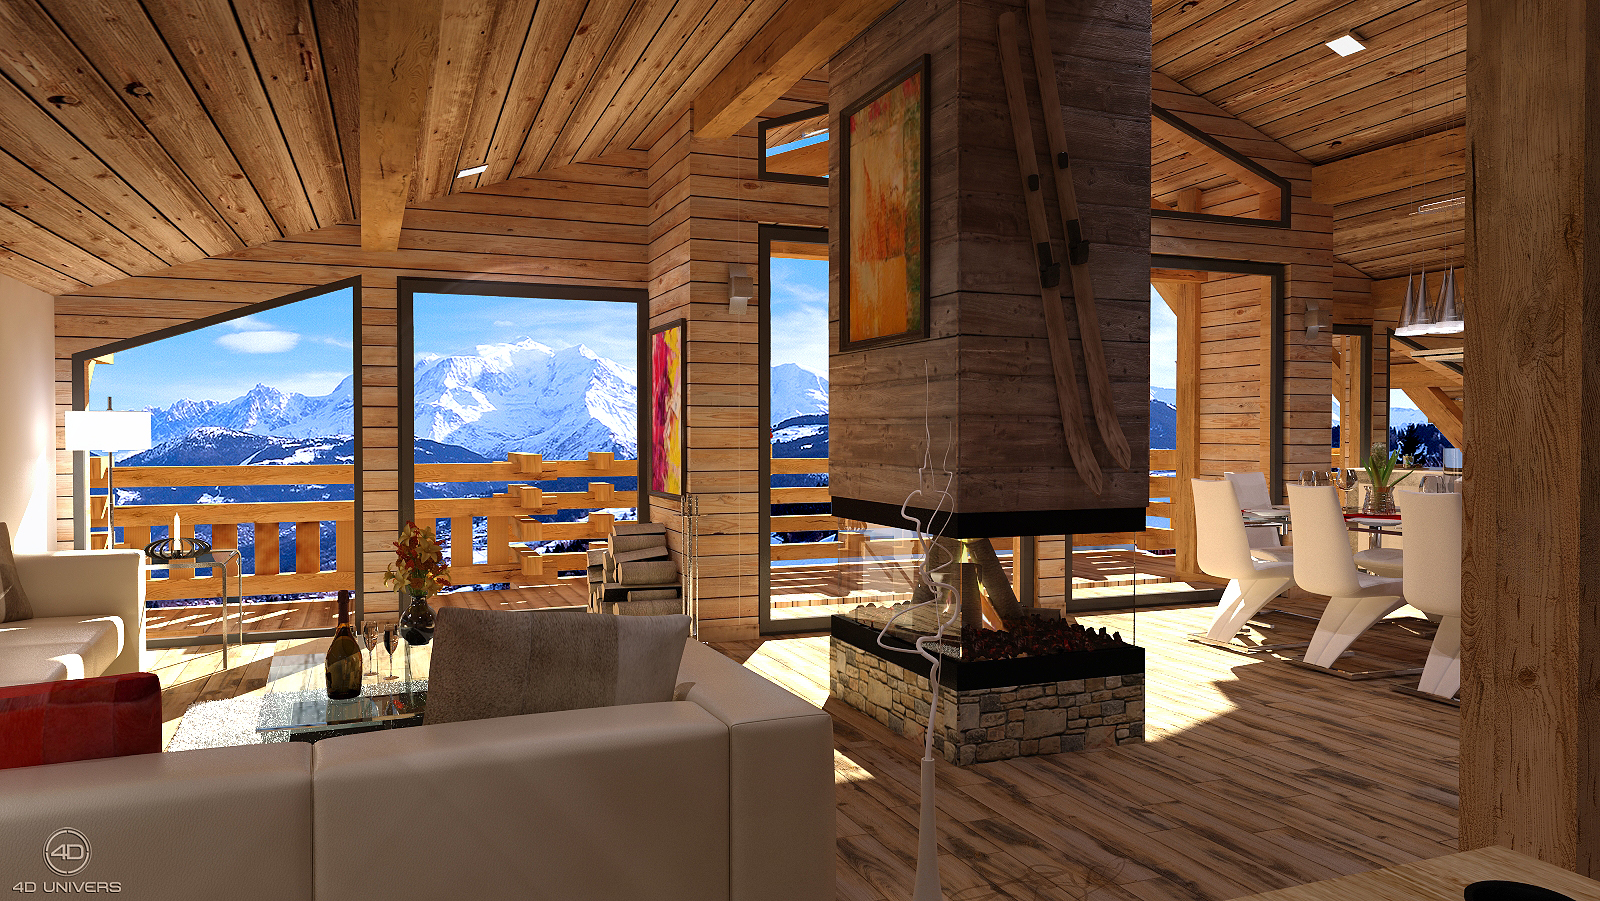 Chalet meg ve 4d univers studio animation 3d for Programme decoration interieur